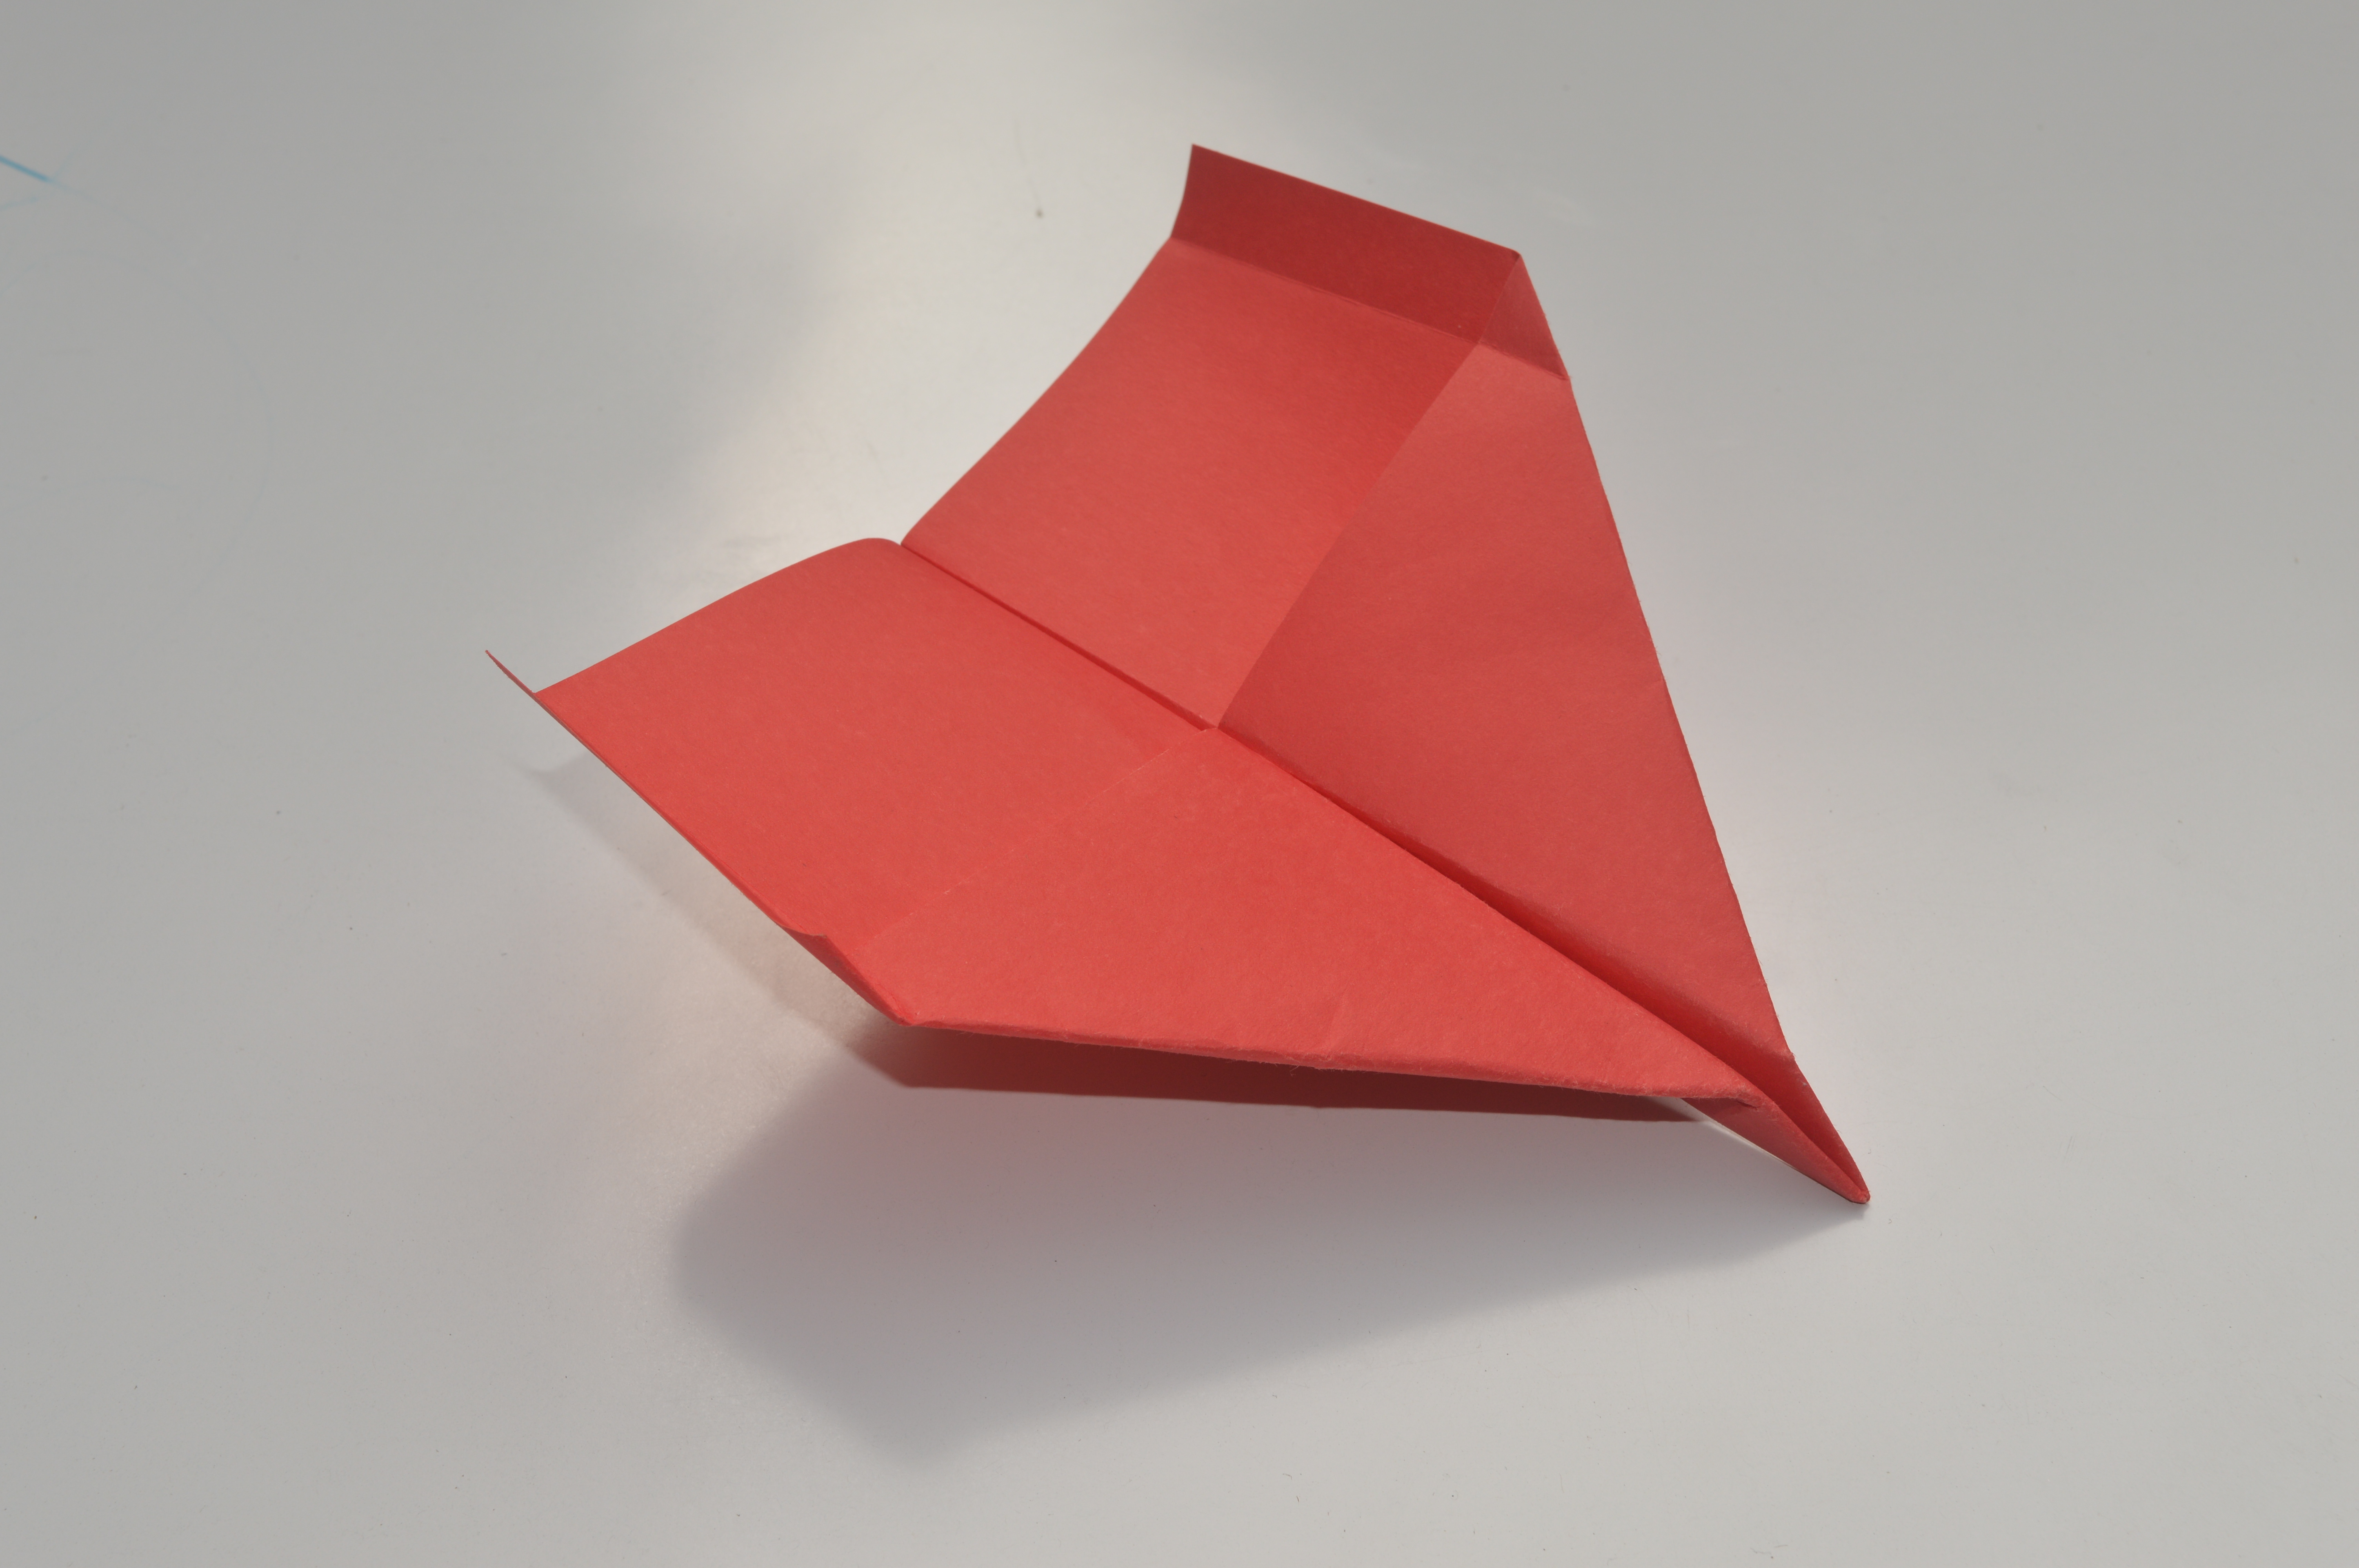 Https://www.instructables.com/id/Paper-Airplane-Glider-3/                                   Https://www.instructables.com/id/How-To-Make-A-Dart-Airplane/                                            Https://www.instructables.com/id/Paper-Airplane-27/